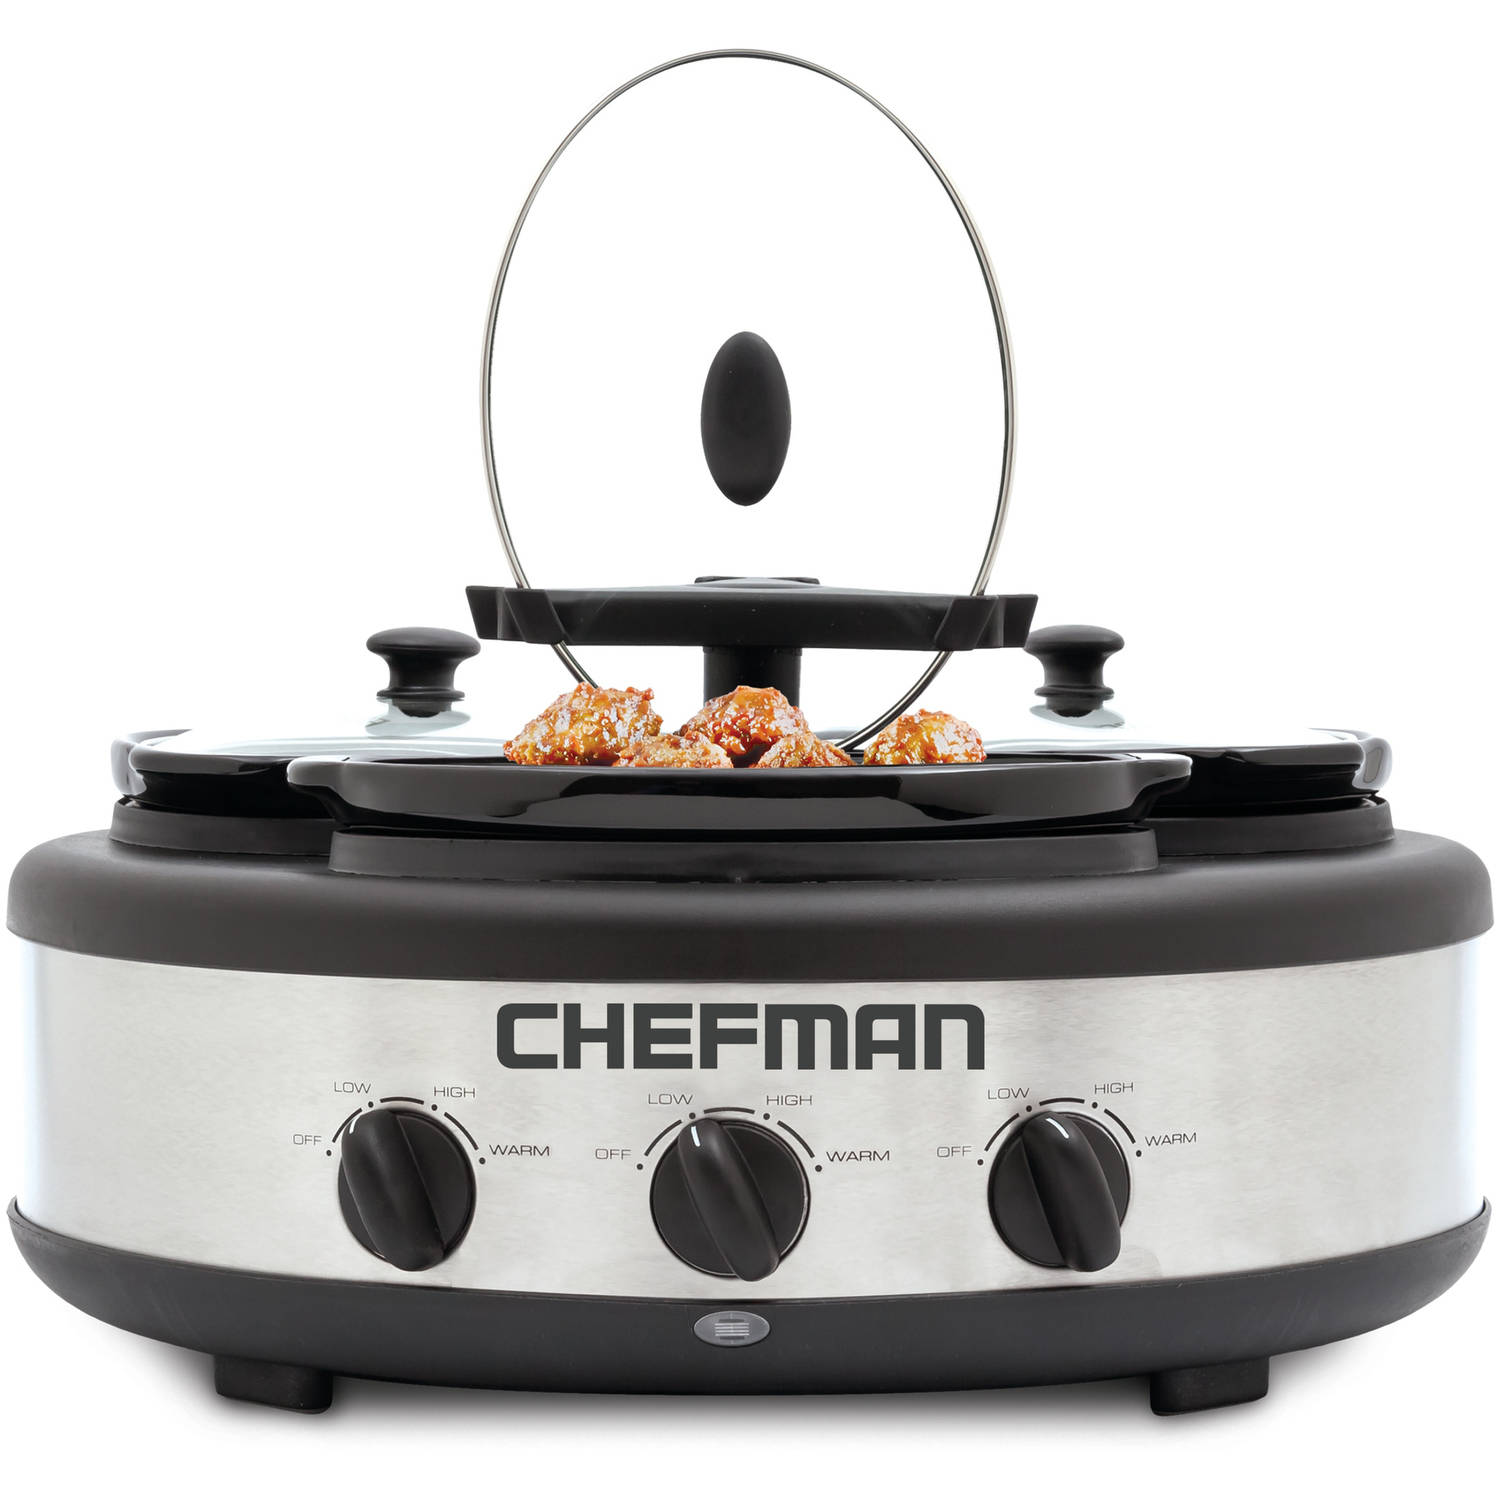 Chefman 3 x 1.5-Qt Triple Slow Cooker, Round with Oval Crocks